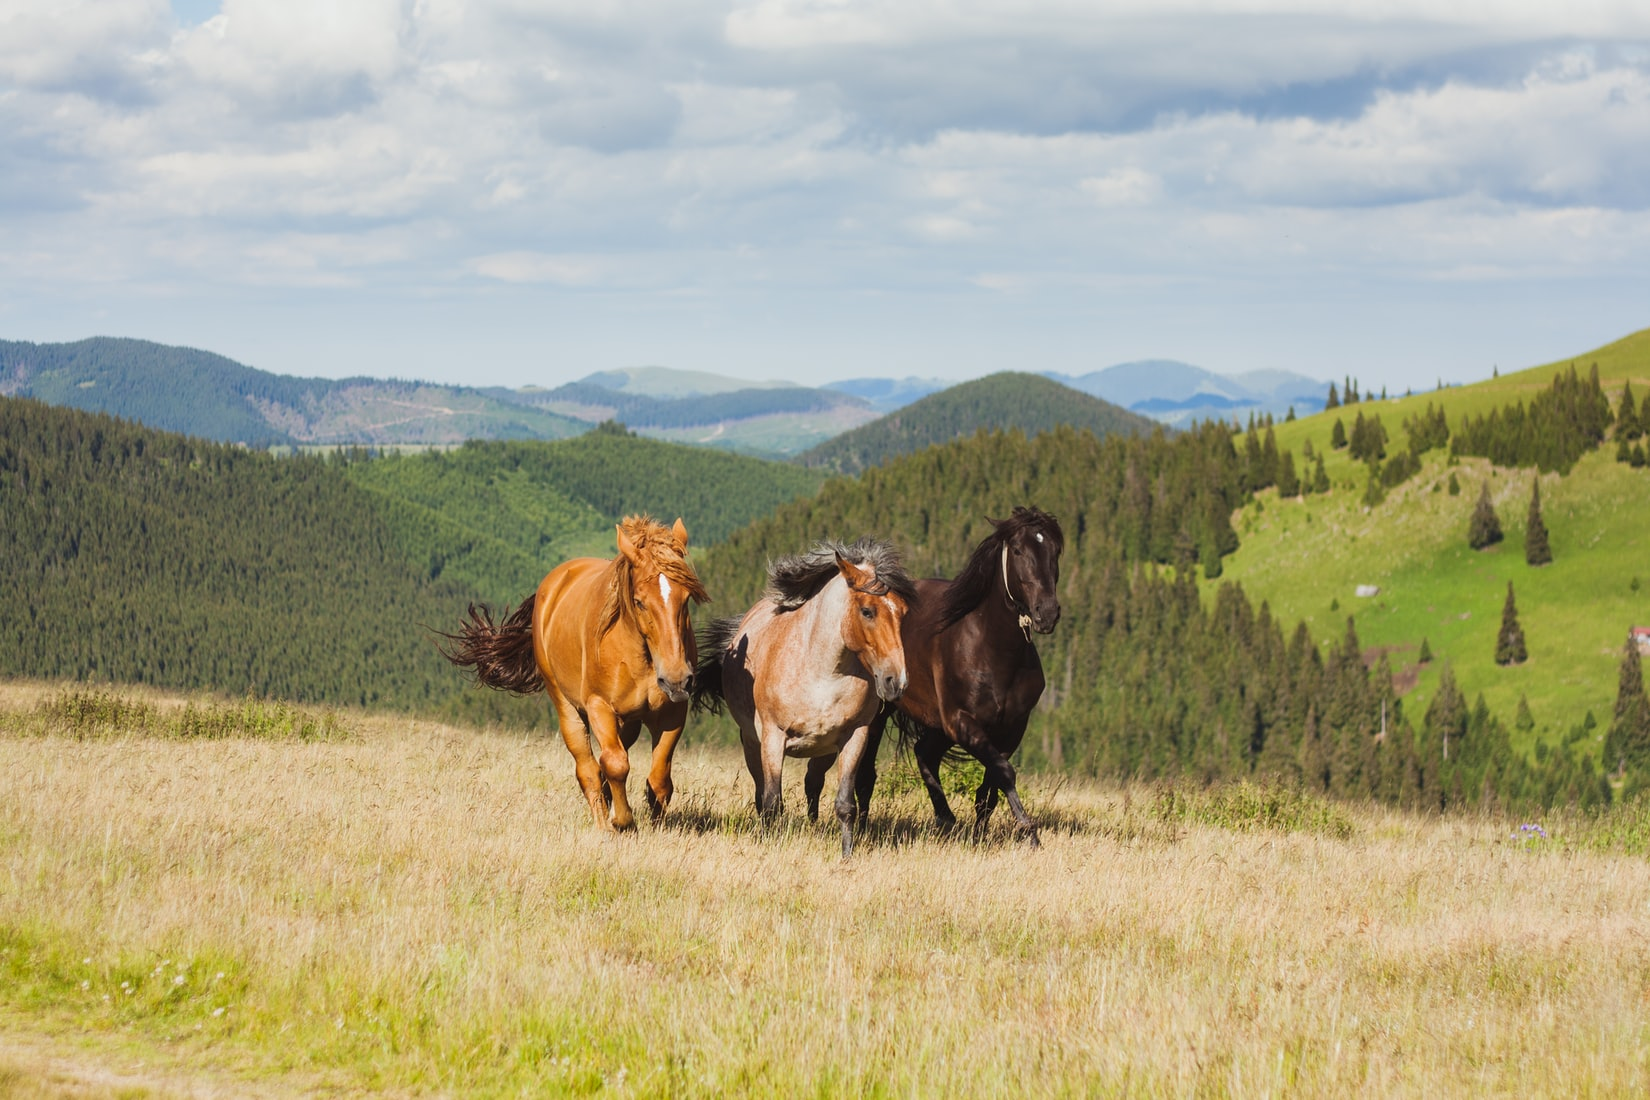 Fuel, Fire, and Wild Horses